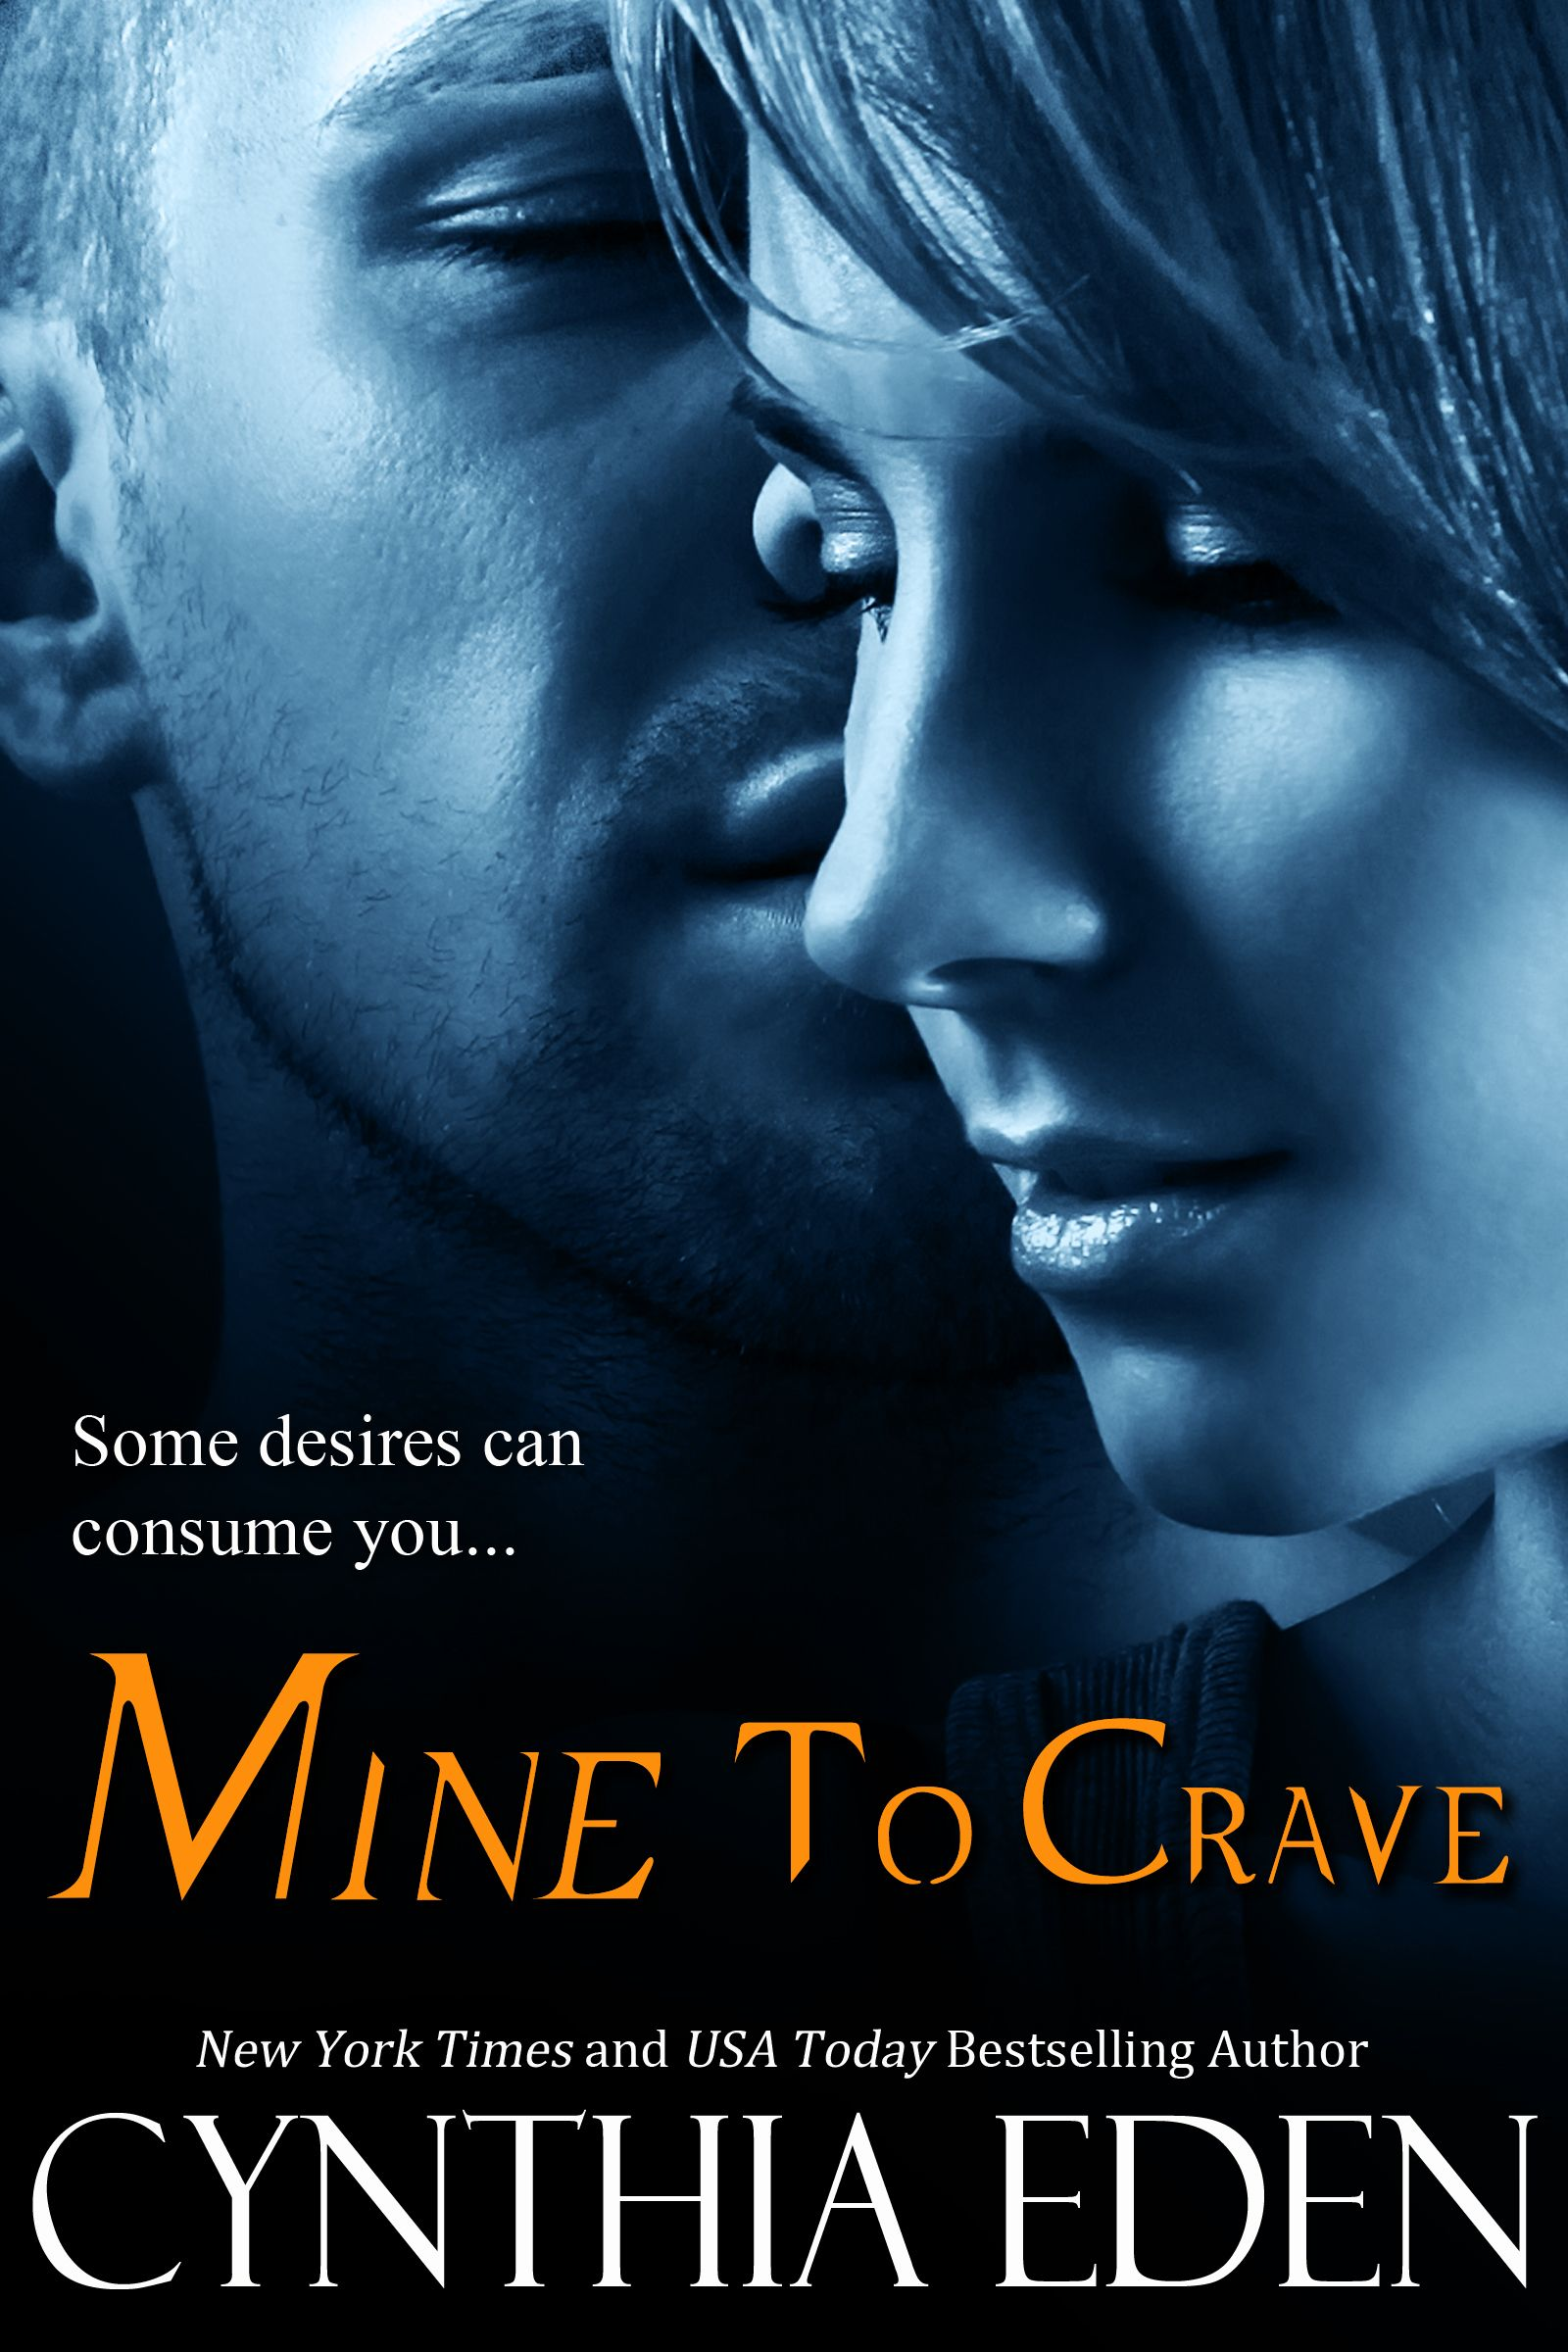 Win 50 gift card with MINE TO CRAVE by Cynthia Eden